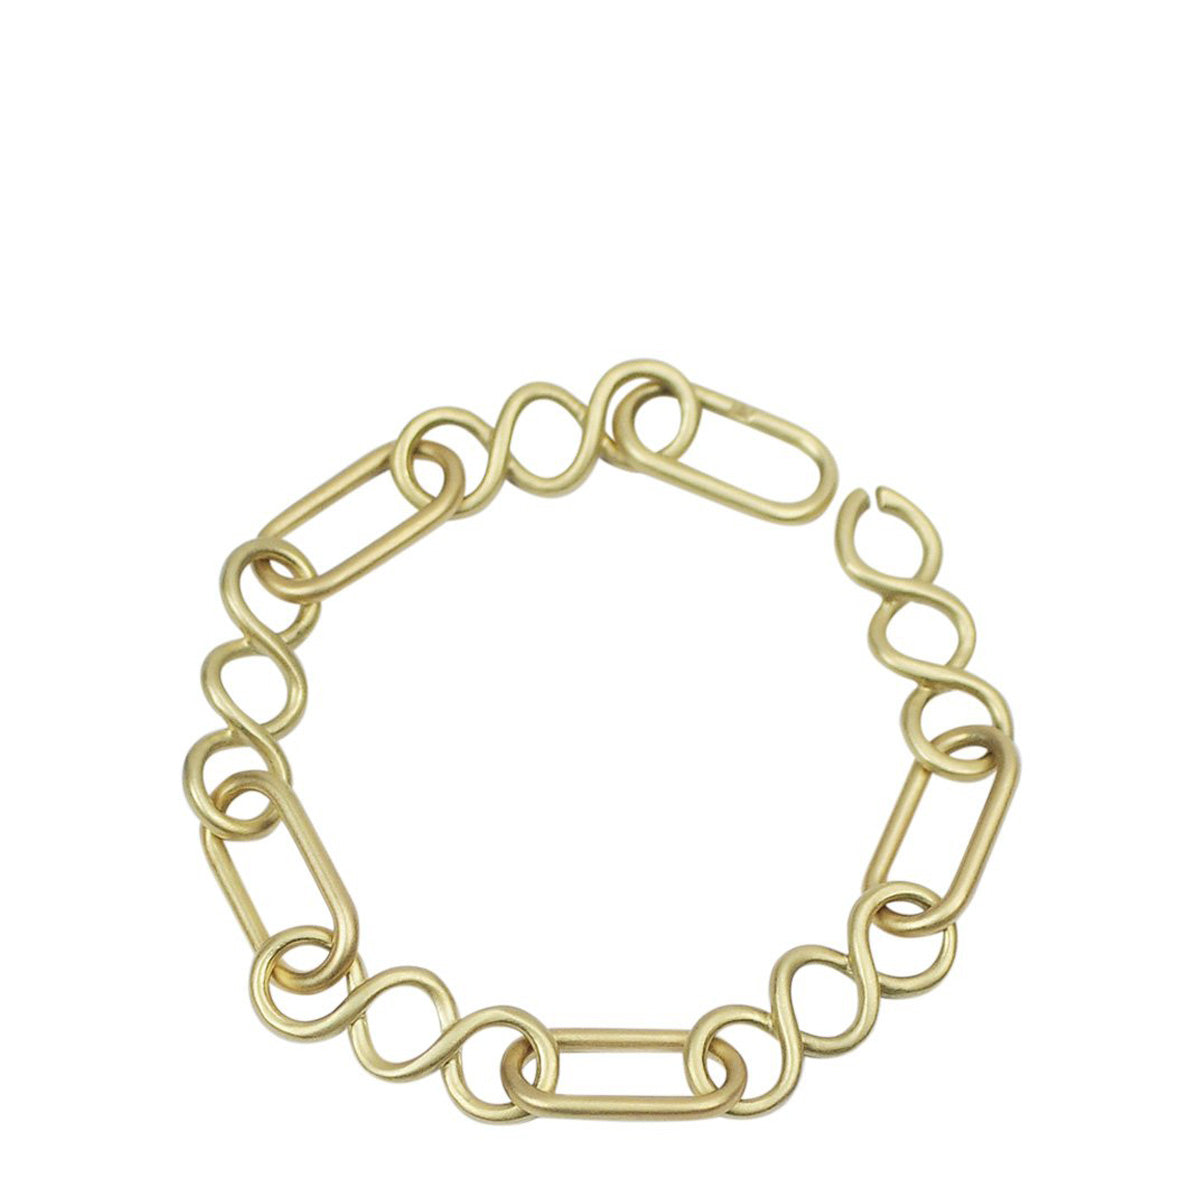 18K Gold Large Heavy Oval Chain Bracelet